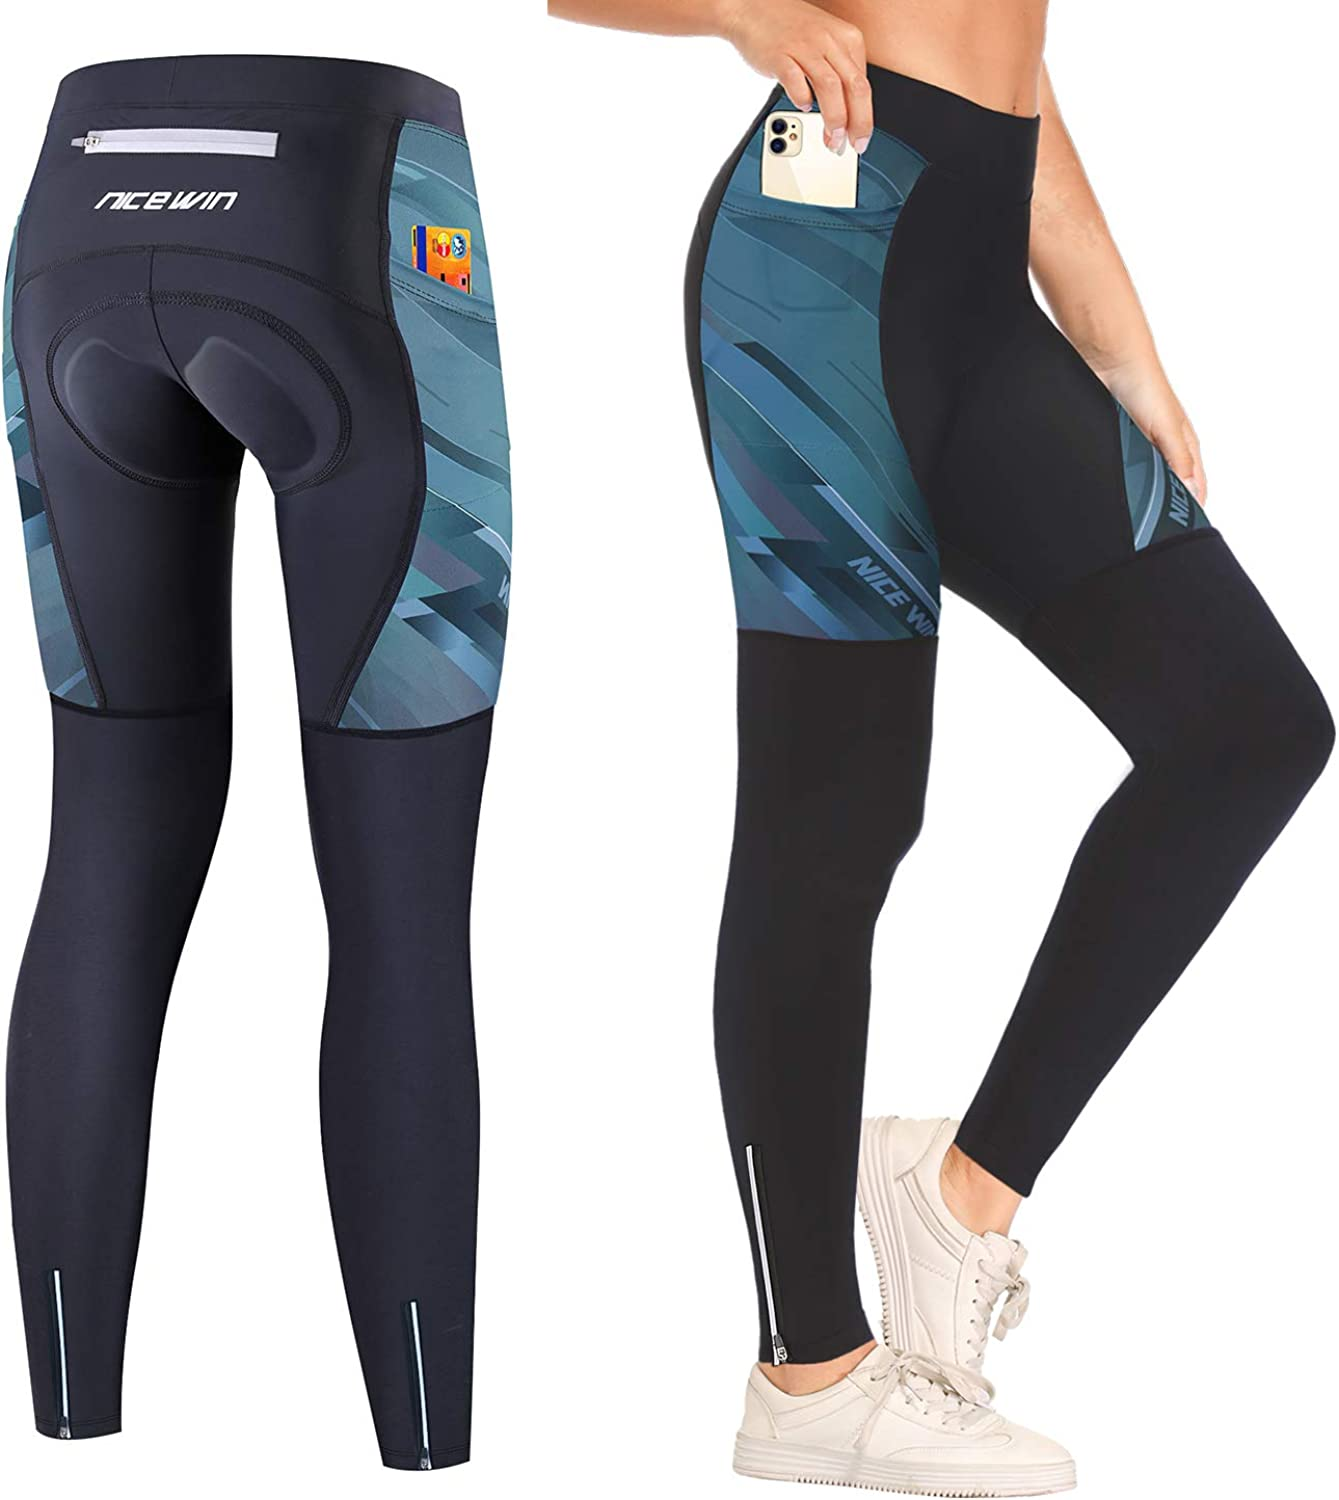 NICEWIN Women Padded We OFFer at cheap prices Cycling Tights Long Legging with Lowest price challenge Br Pockets